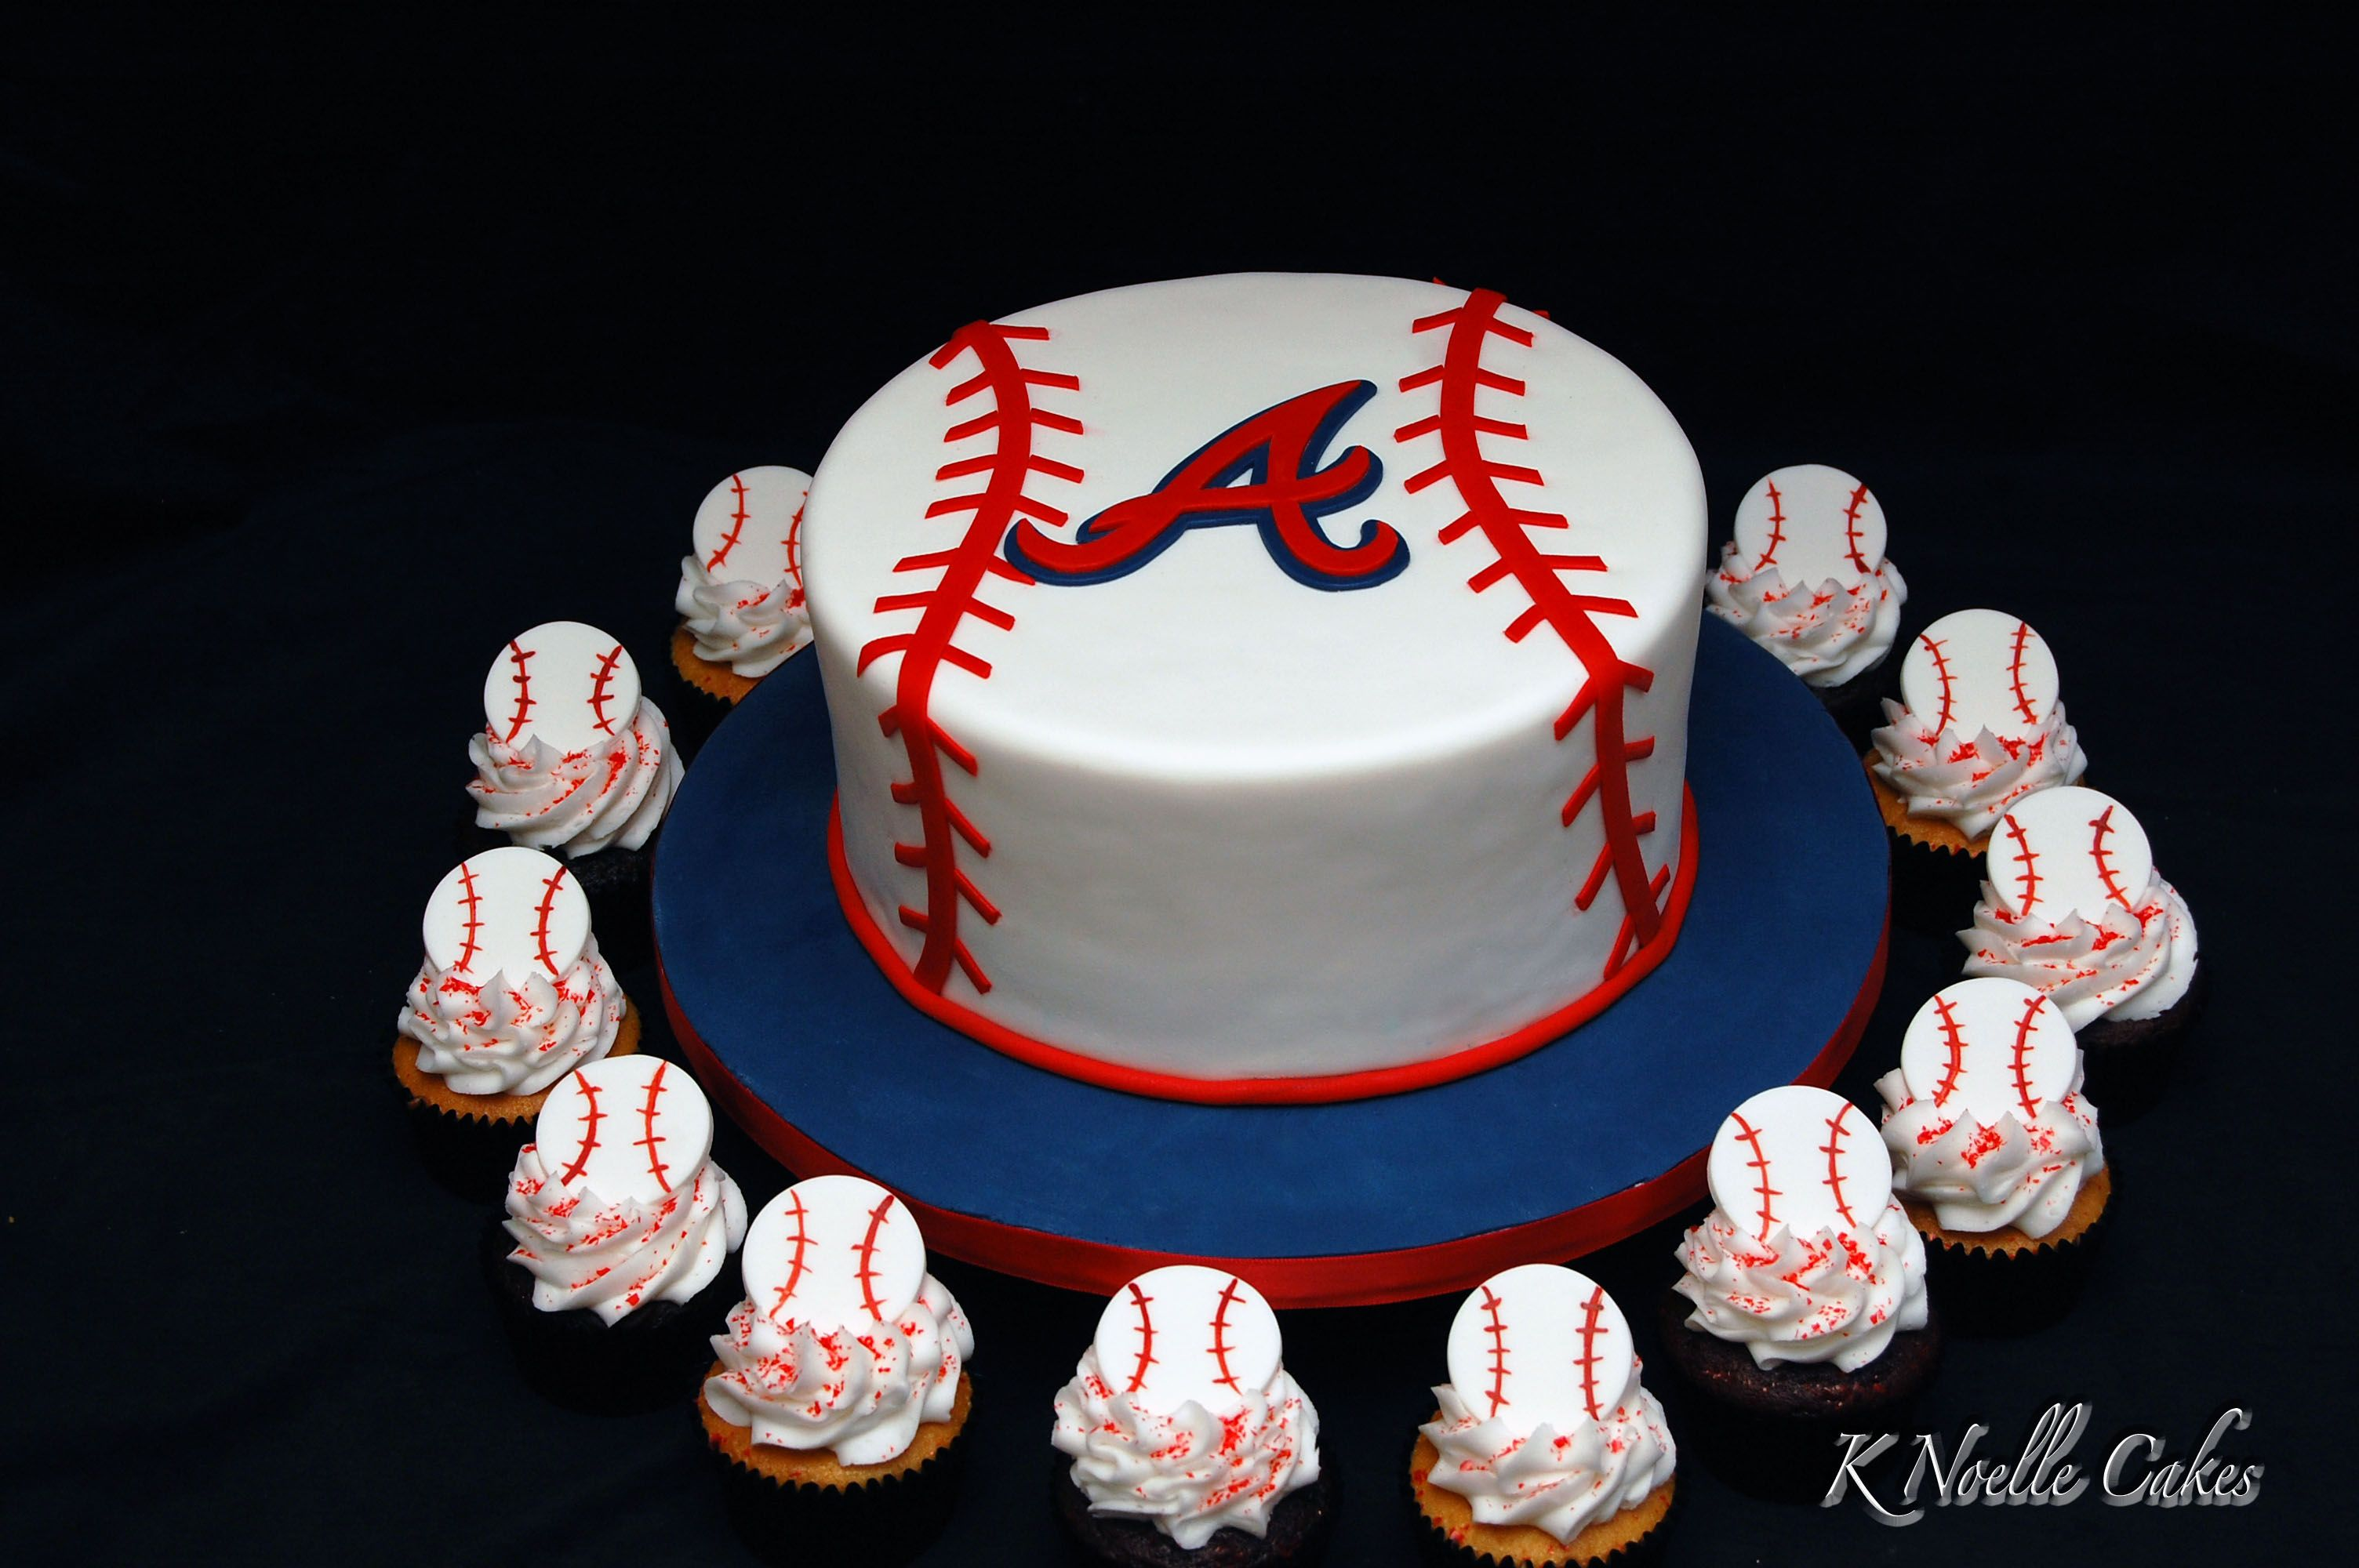 Atlanta Braves Theme Cake With Cupcakes Brave Birthday Cakes Atlanta Braves Cake Atlanta Braves Birthday